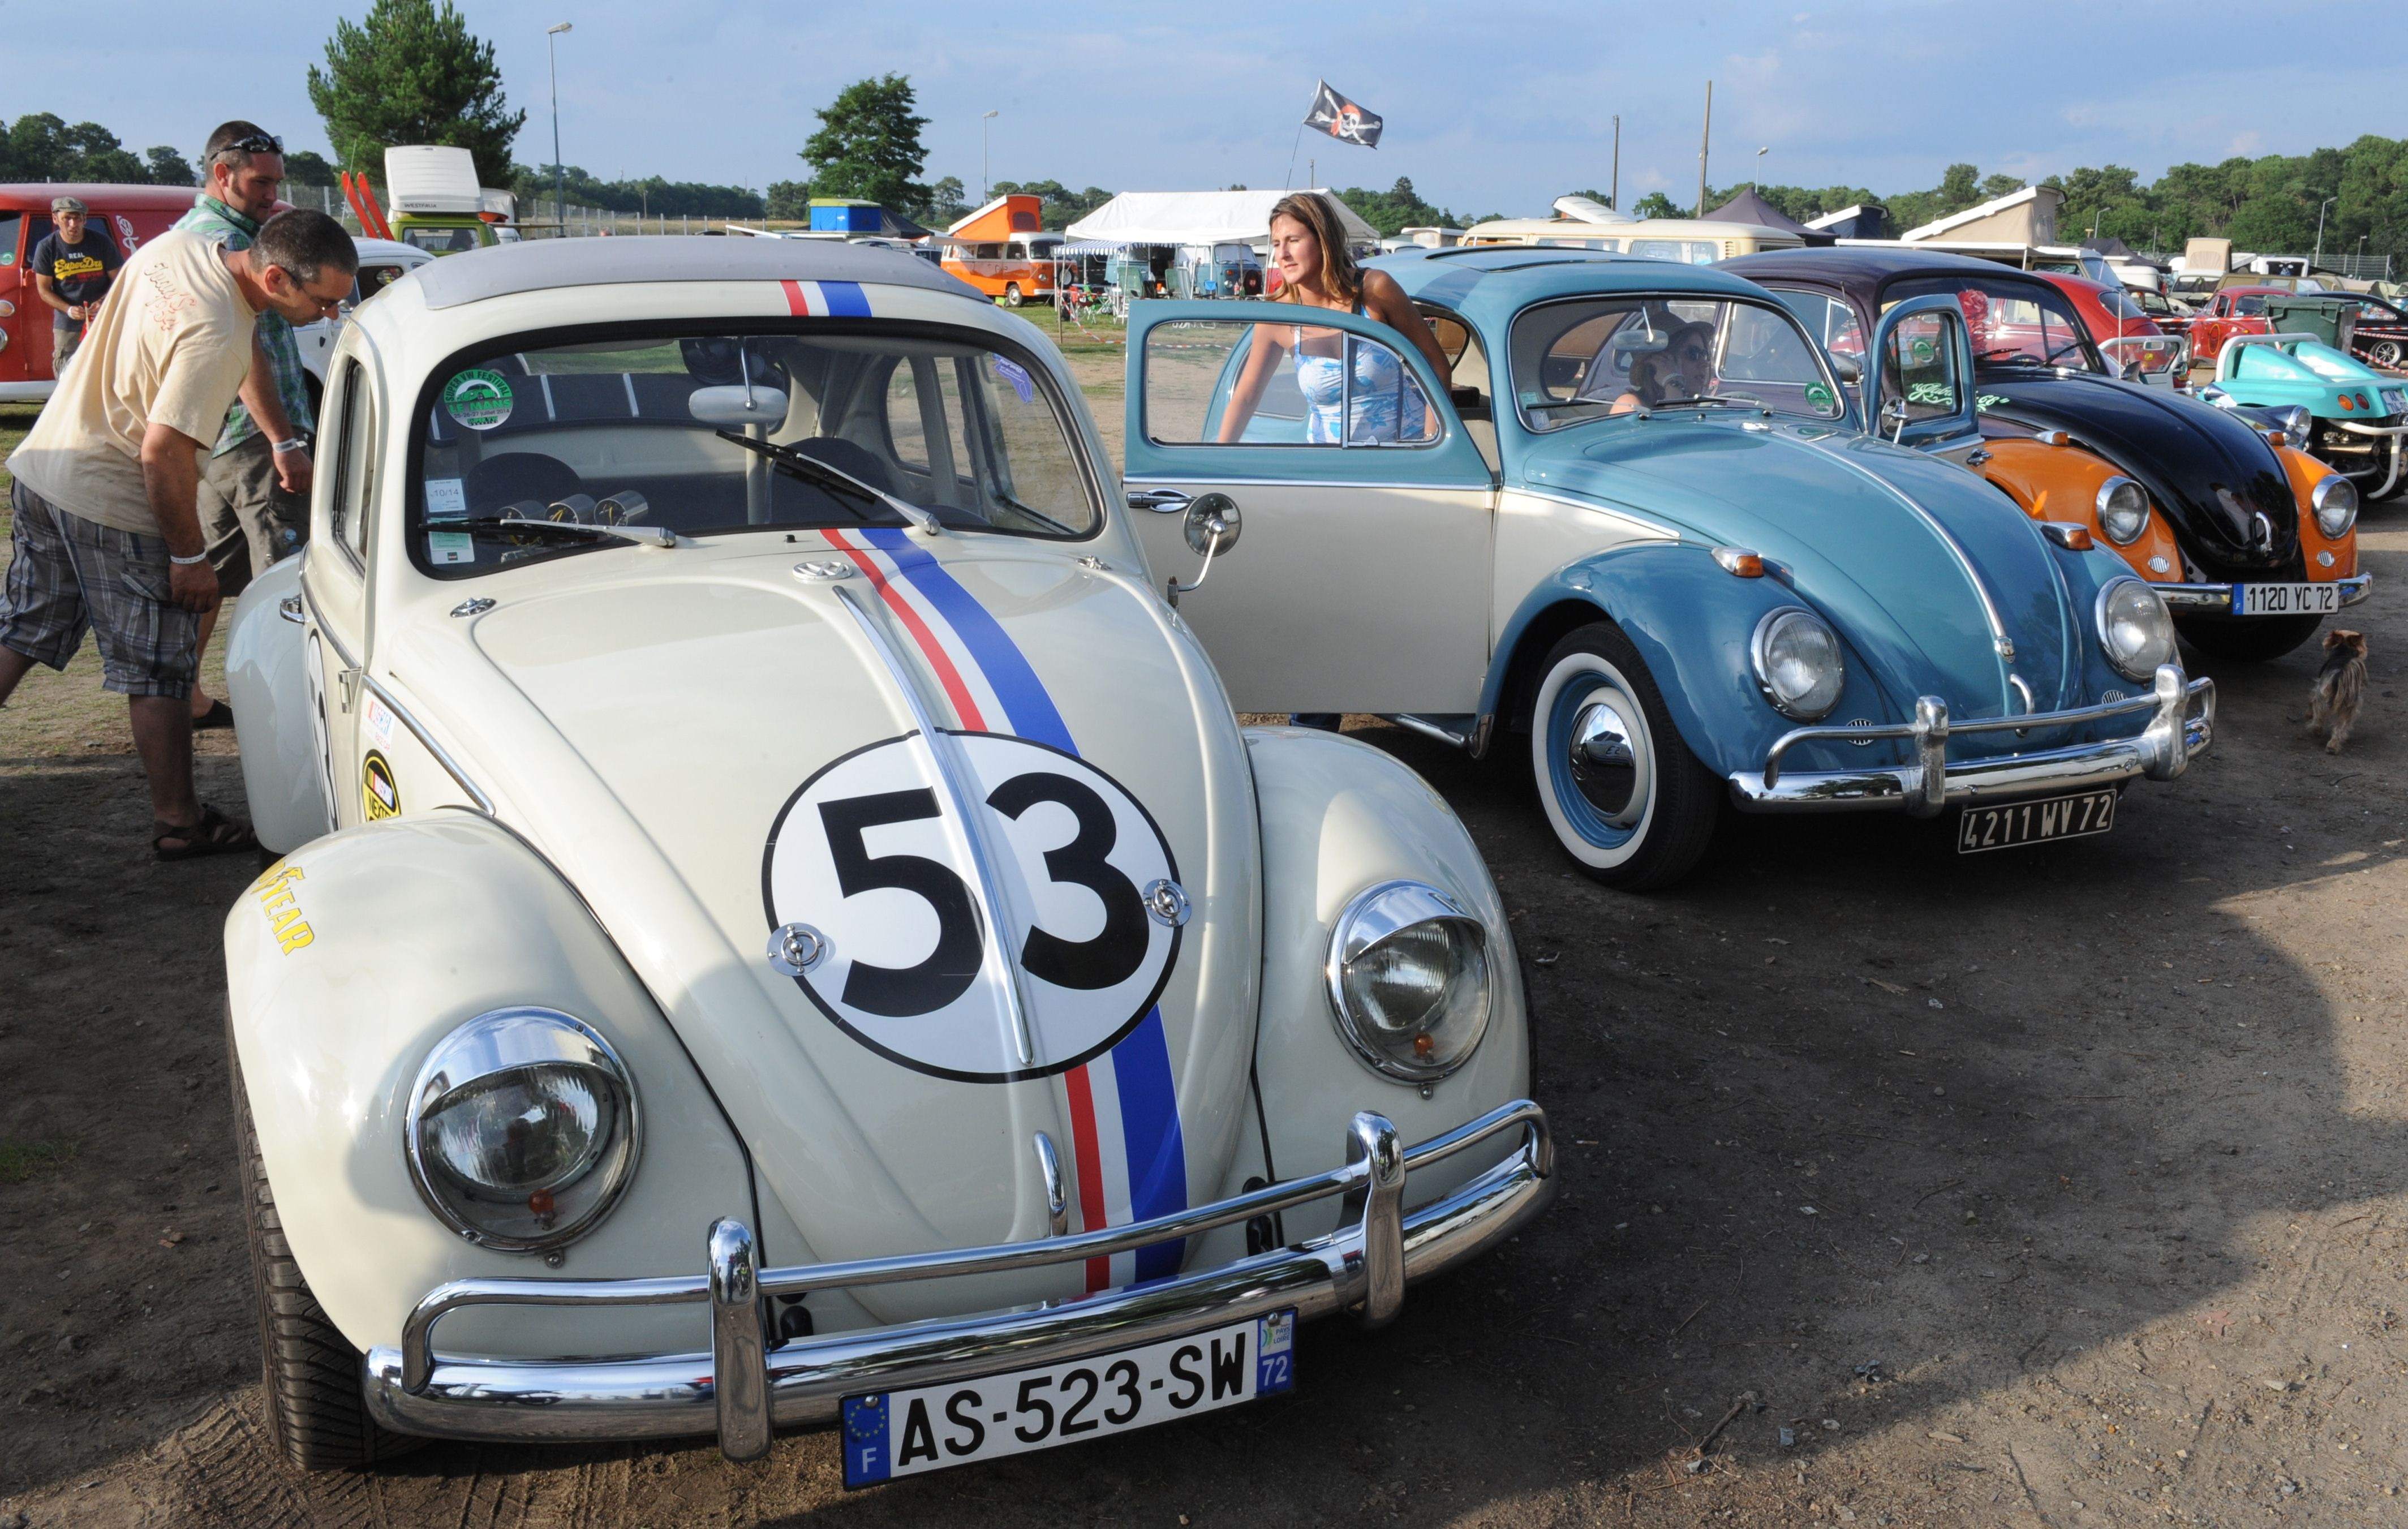 A super VW rally in France, family members of the dead visit MH17 crash site and the Commonwealth Games in Scotland | July 26